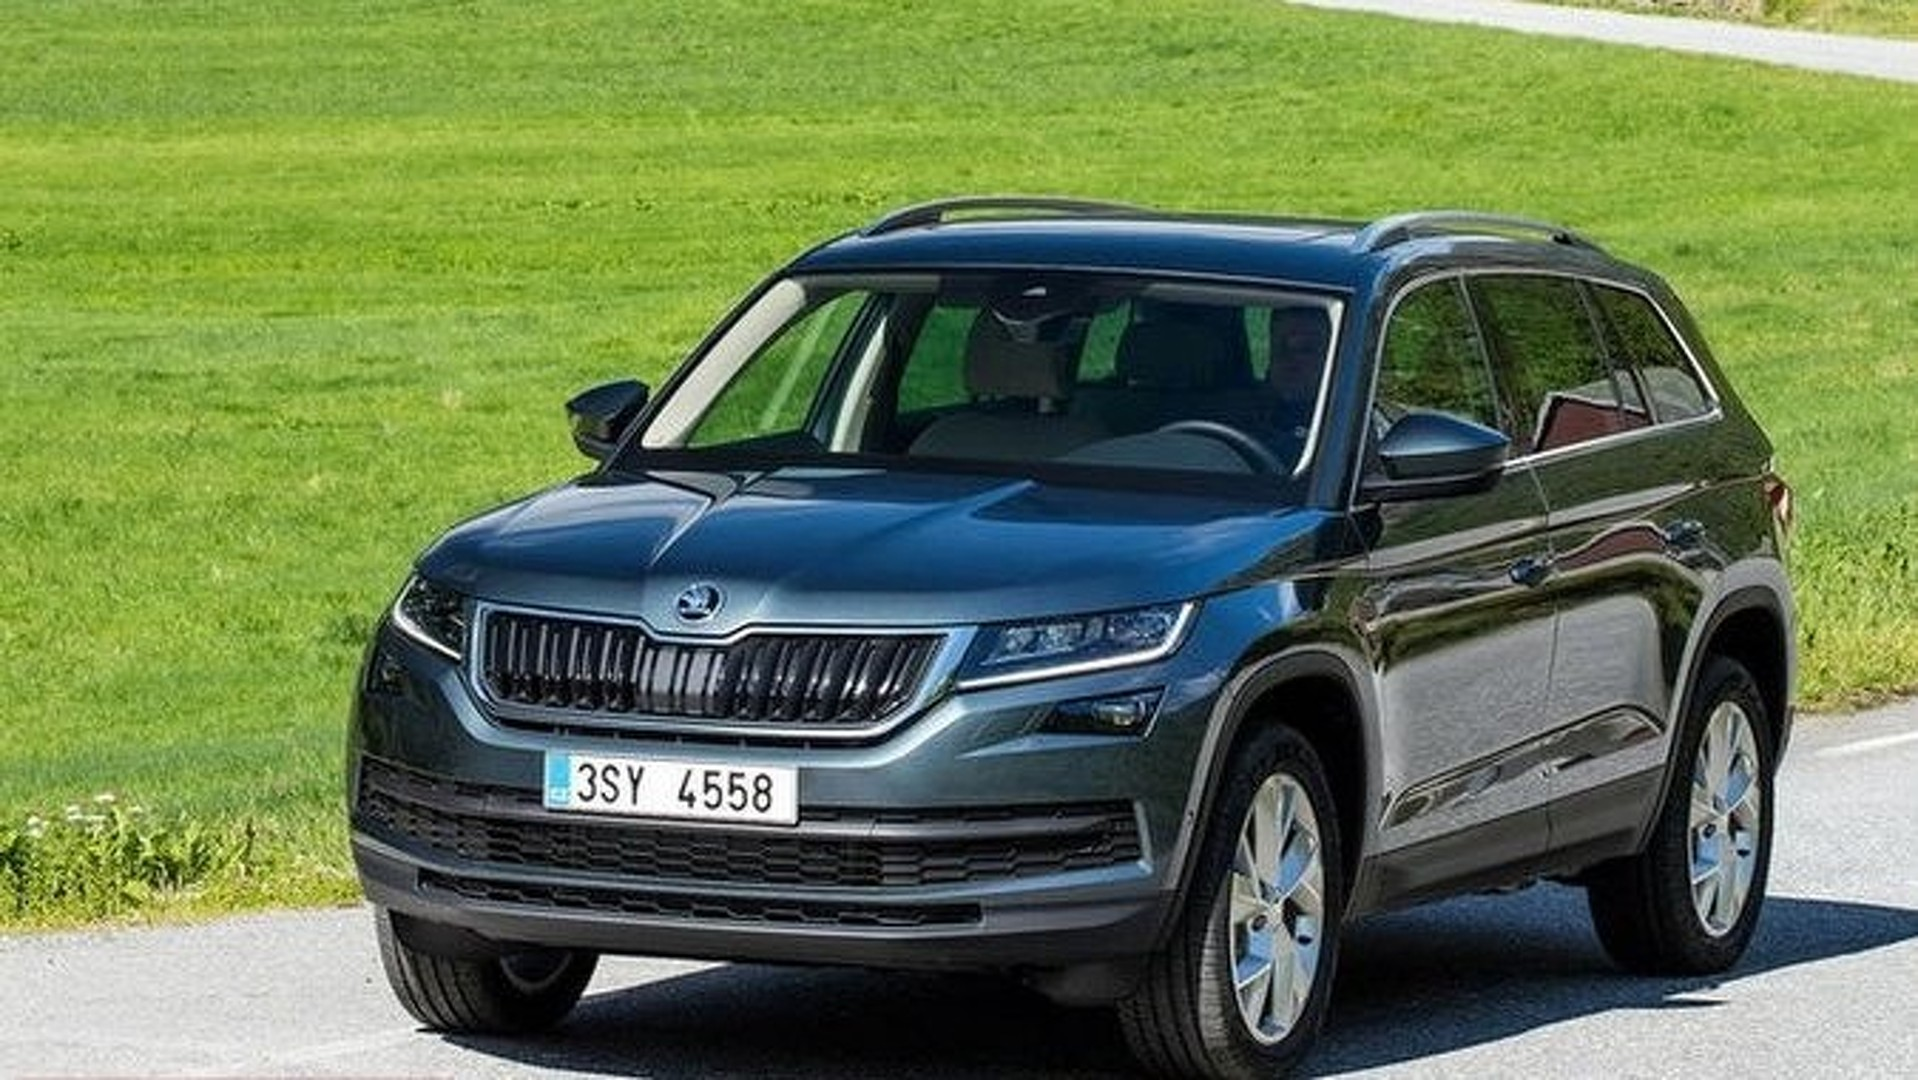 skoda kodiaq page 2 auto titre. Black Bedroom Furniture Sets. Home Design Ideas